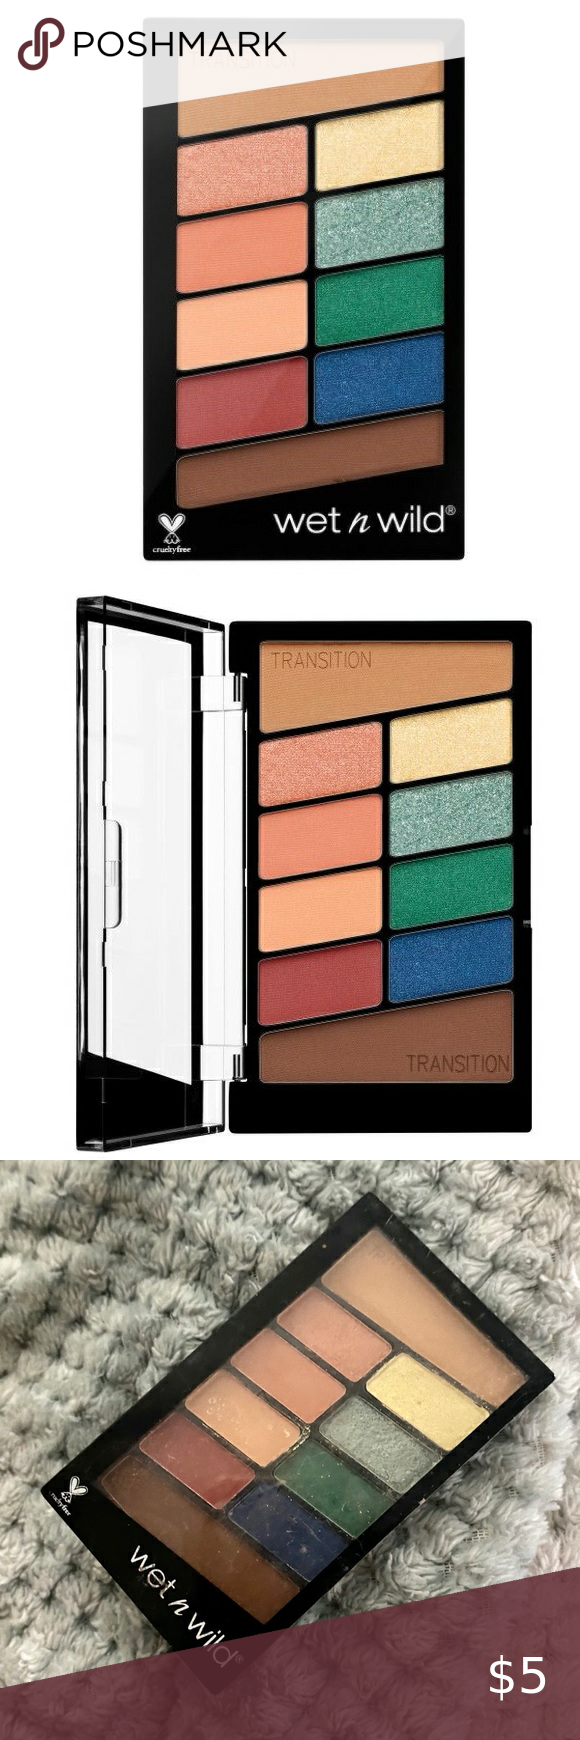 Sold Wet N Wild Color Icon Eyeshadow Palette In 2020 Eyeshadow Palette Eyeshadow Wet N Wild Makeup